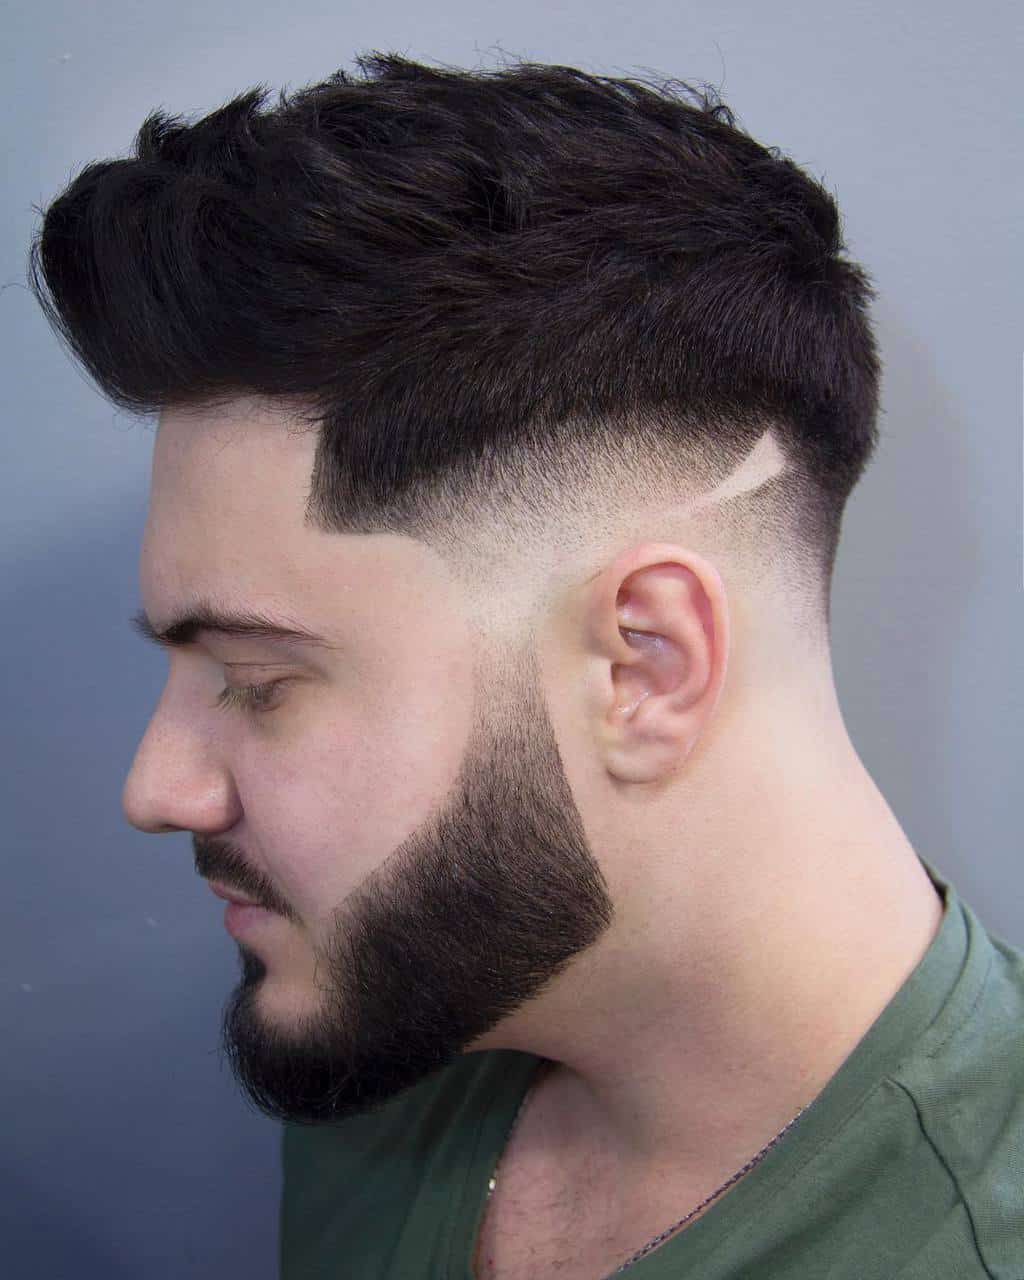 hair and beard styles for men 160 coolest beard styles to grab instant attention 2019 2879 | men beard style 1